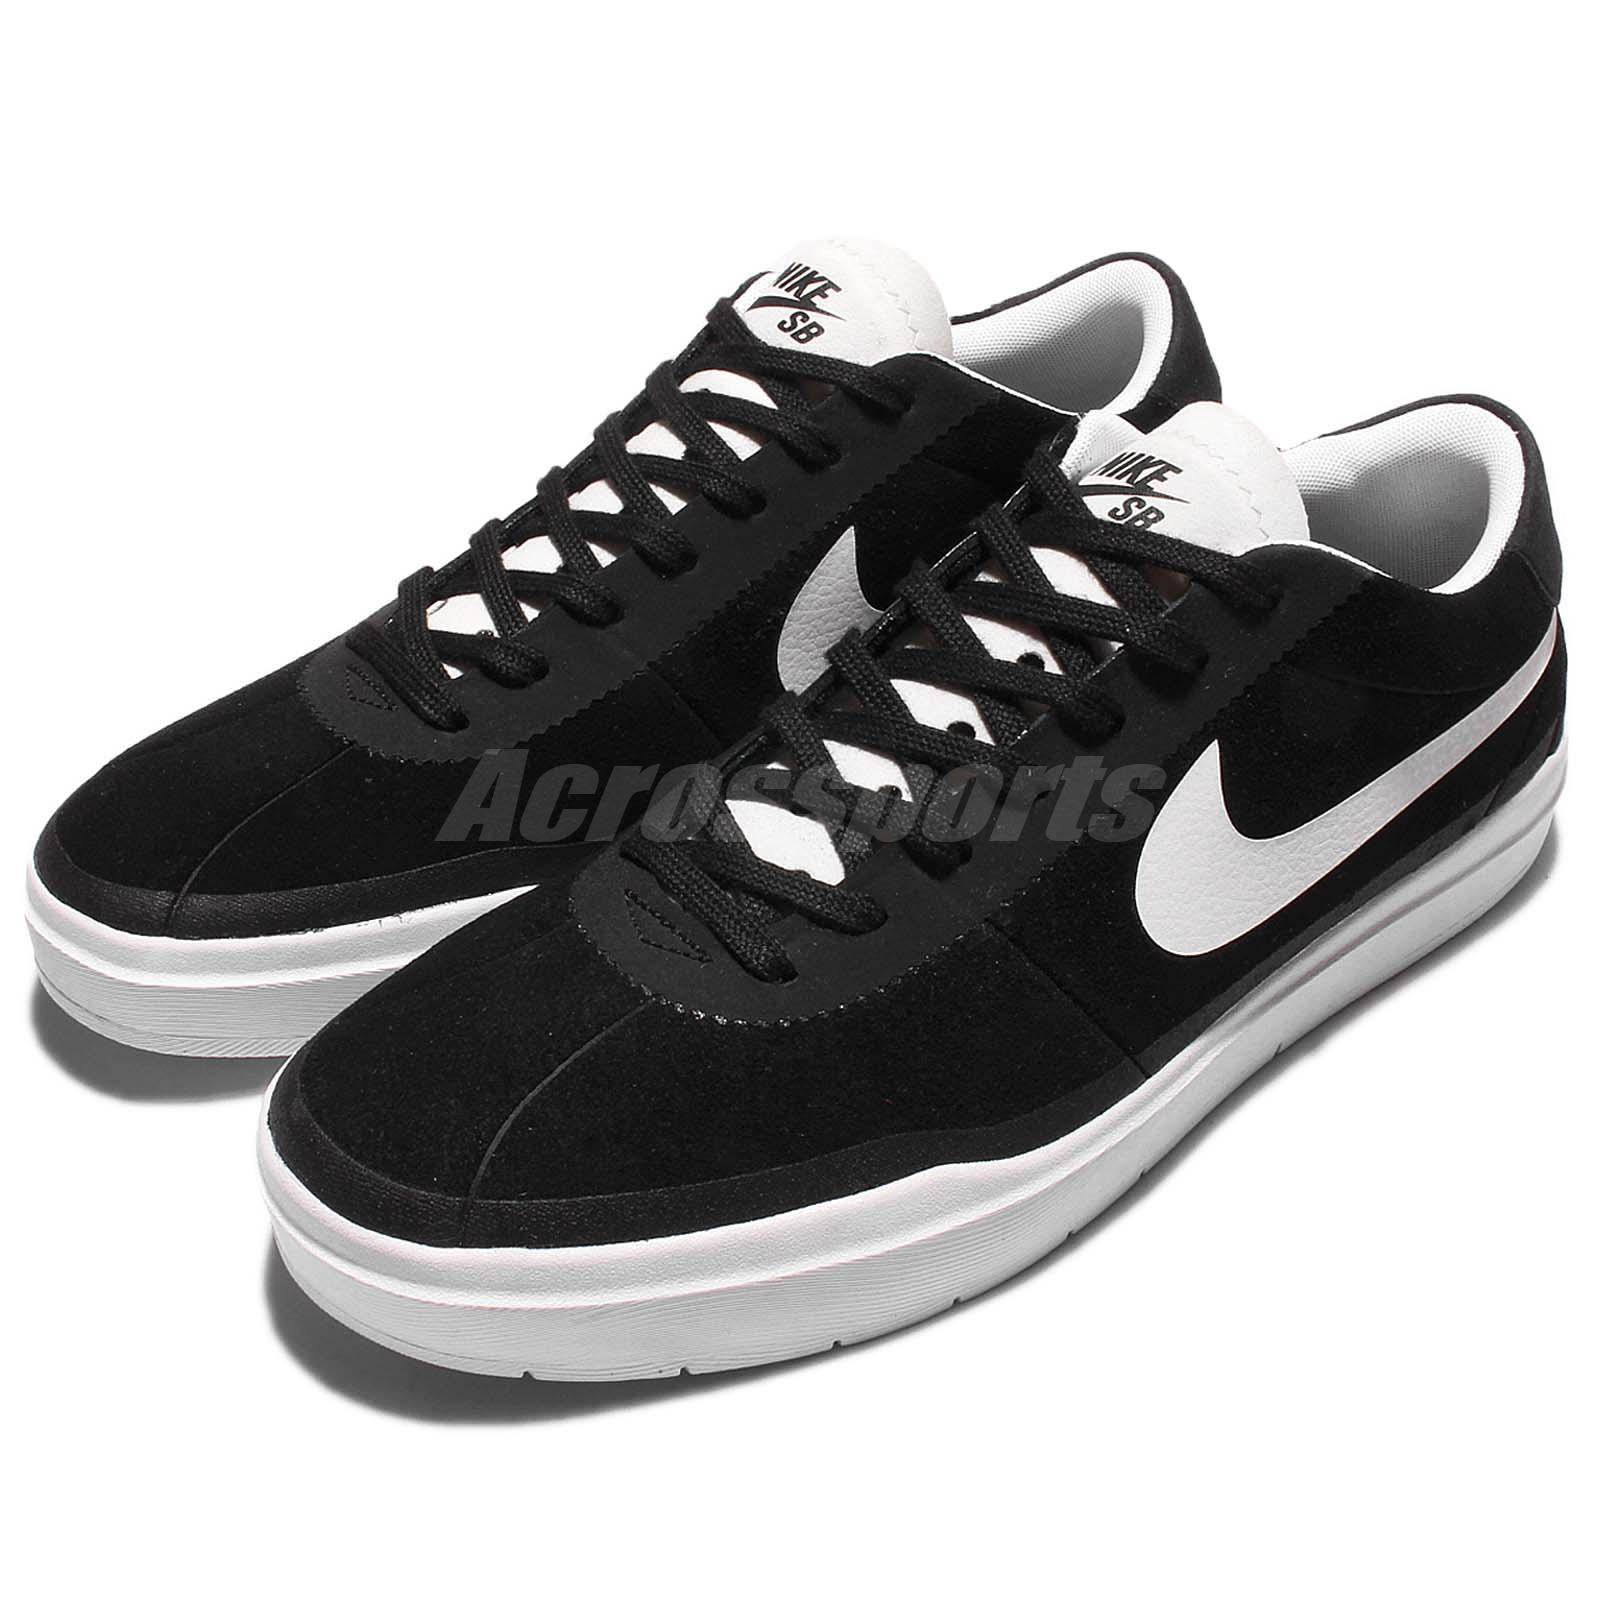 purchase cheap d65fc c29a6 Details about Nike Bruin SB Hyperfeel Black White Mens Skateboarding Shoes  Trainers 831756-001